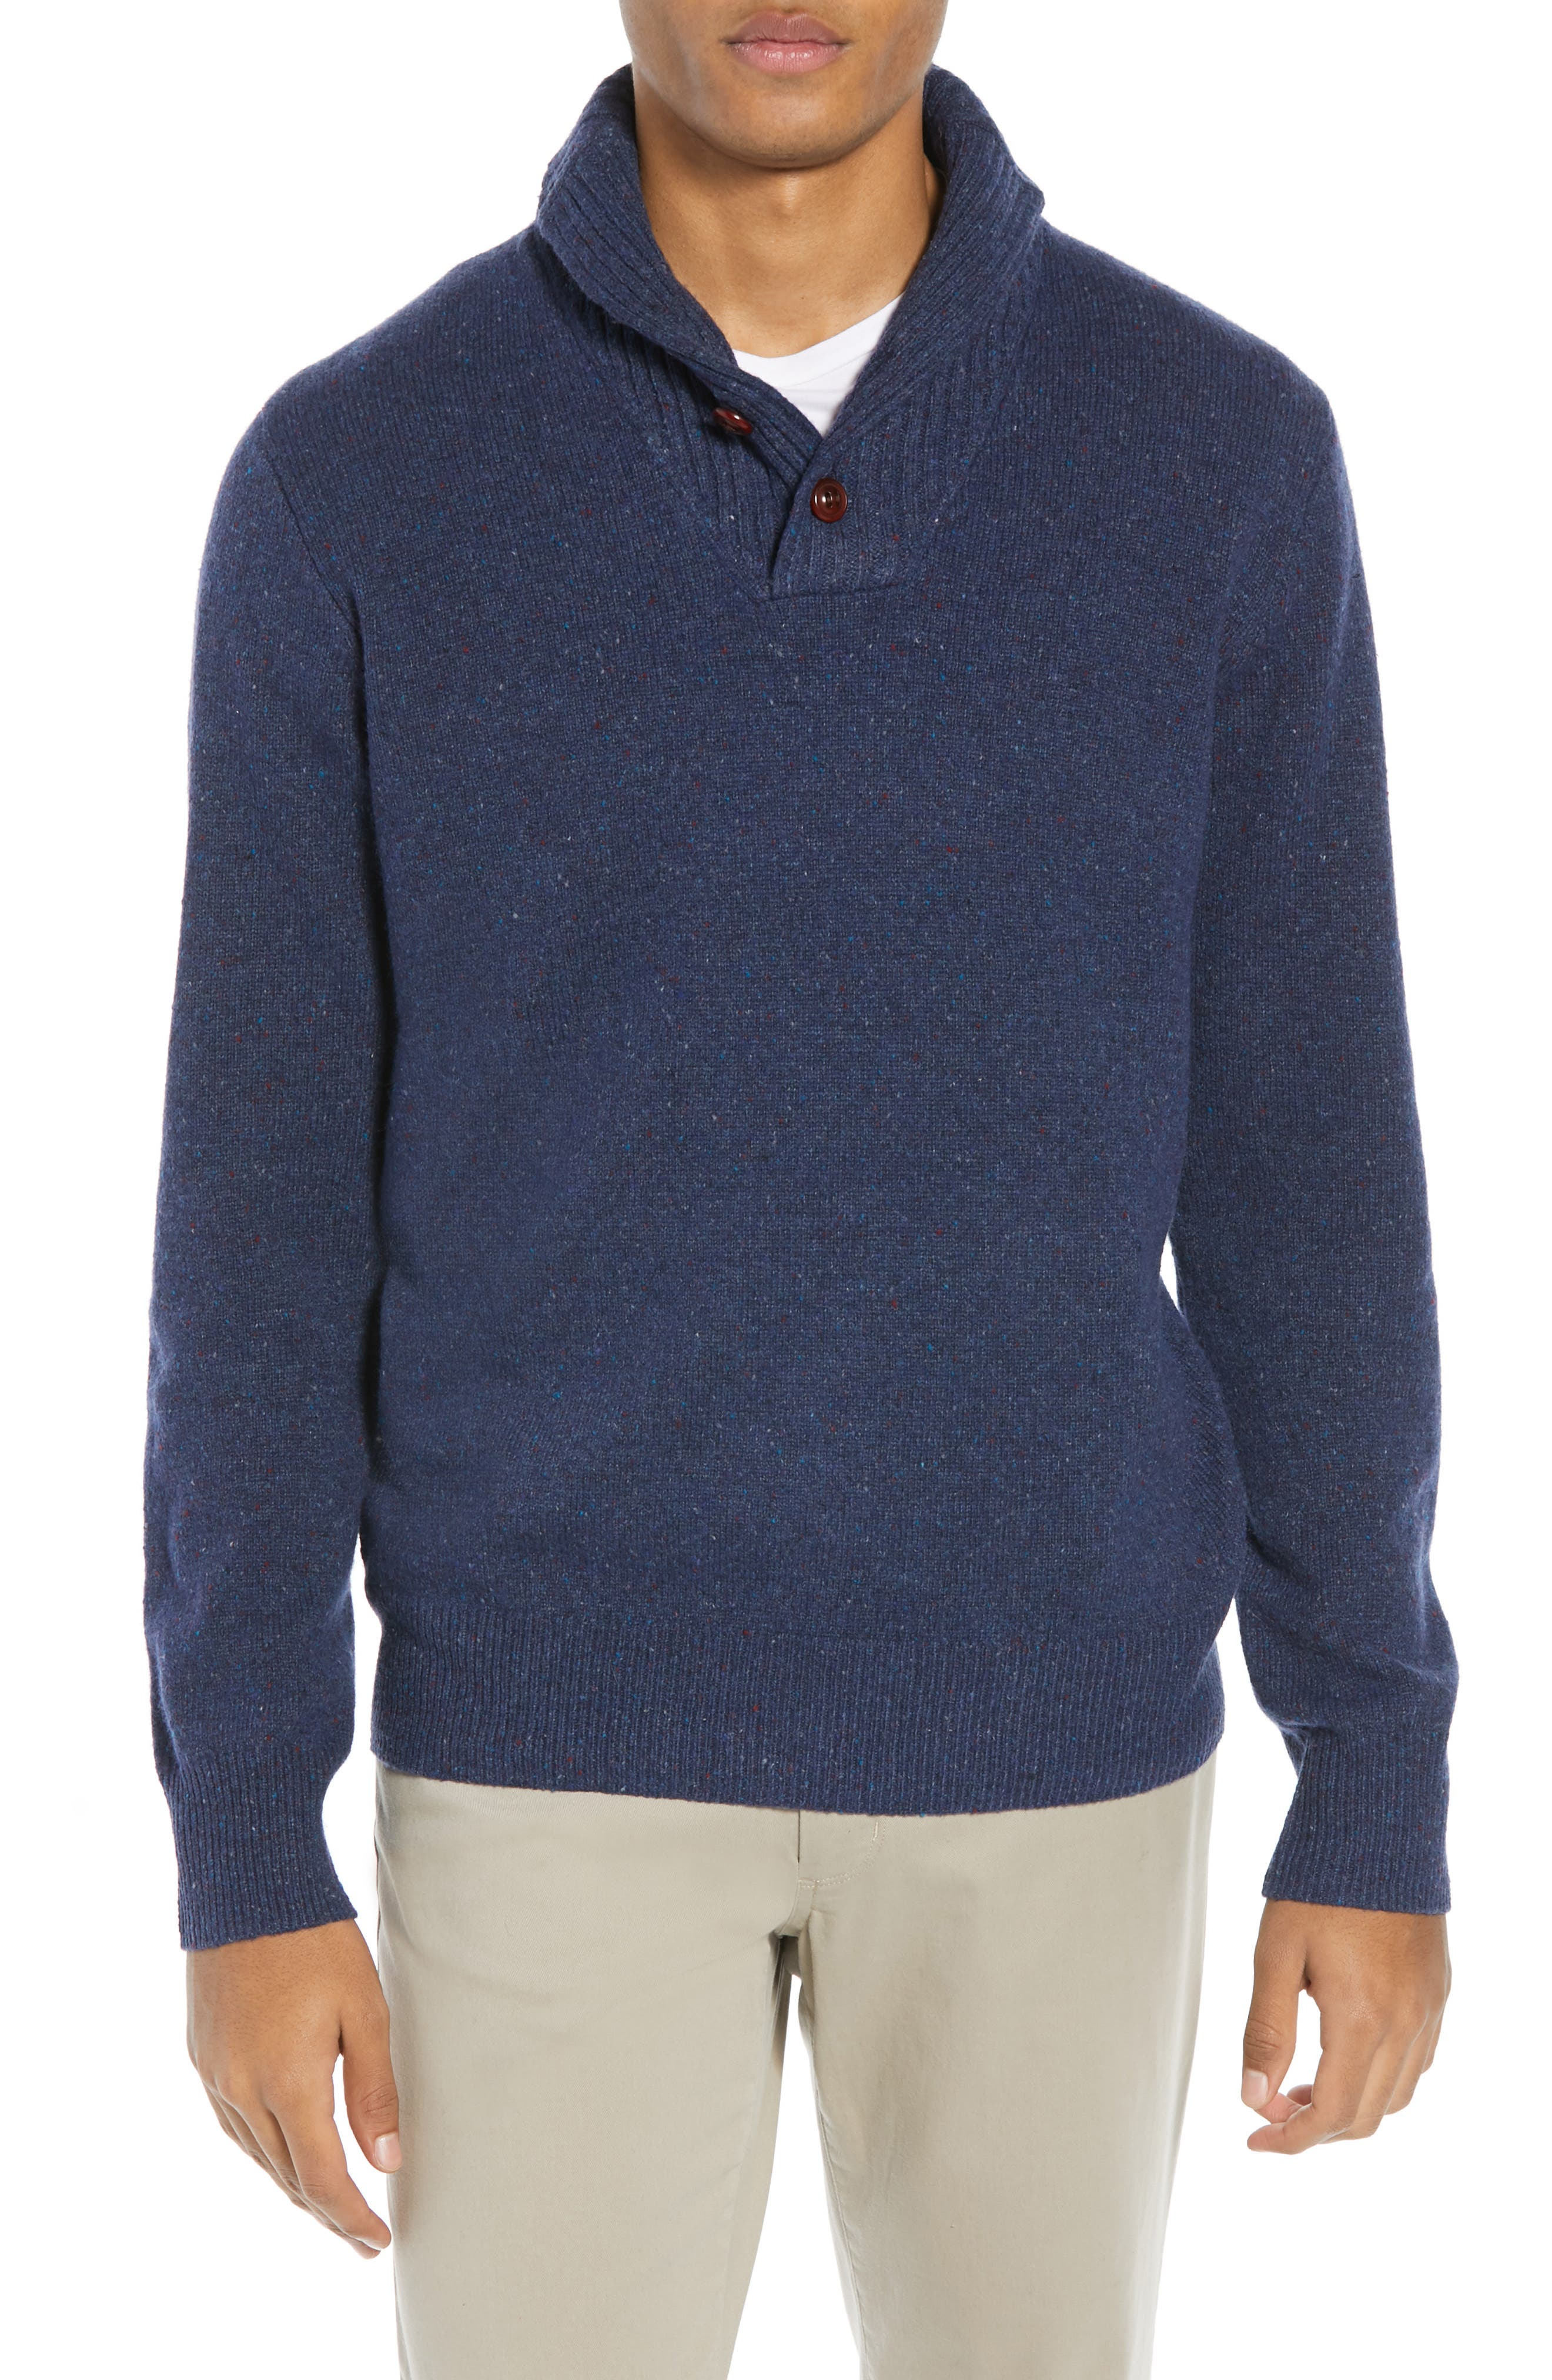 Rugged Merino Wool Blend Shawl Collar Pullover Sweater,                             Main thumbnail 1, color,                             NAVY DONEGAL